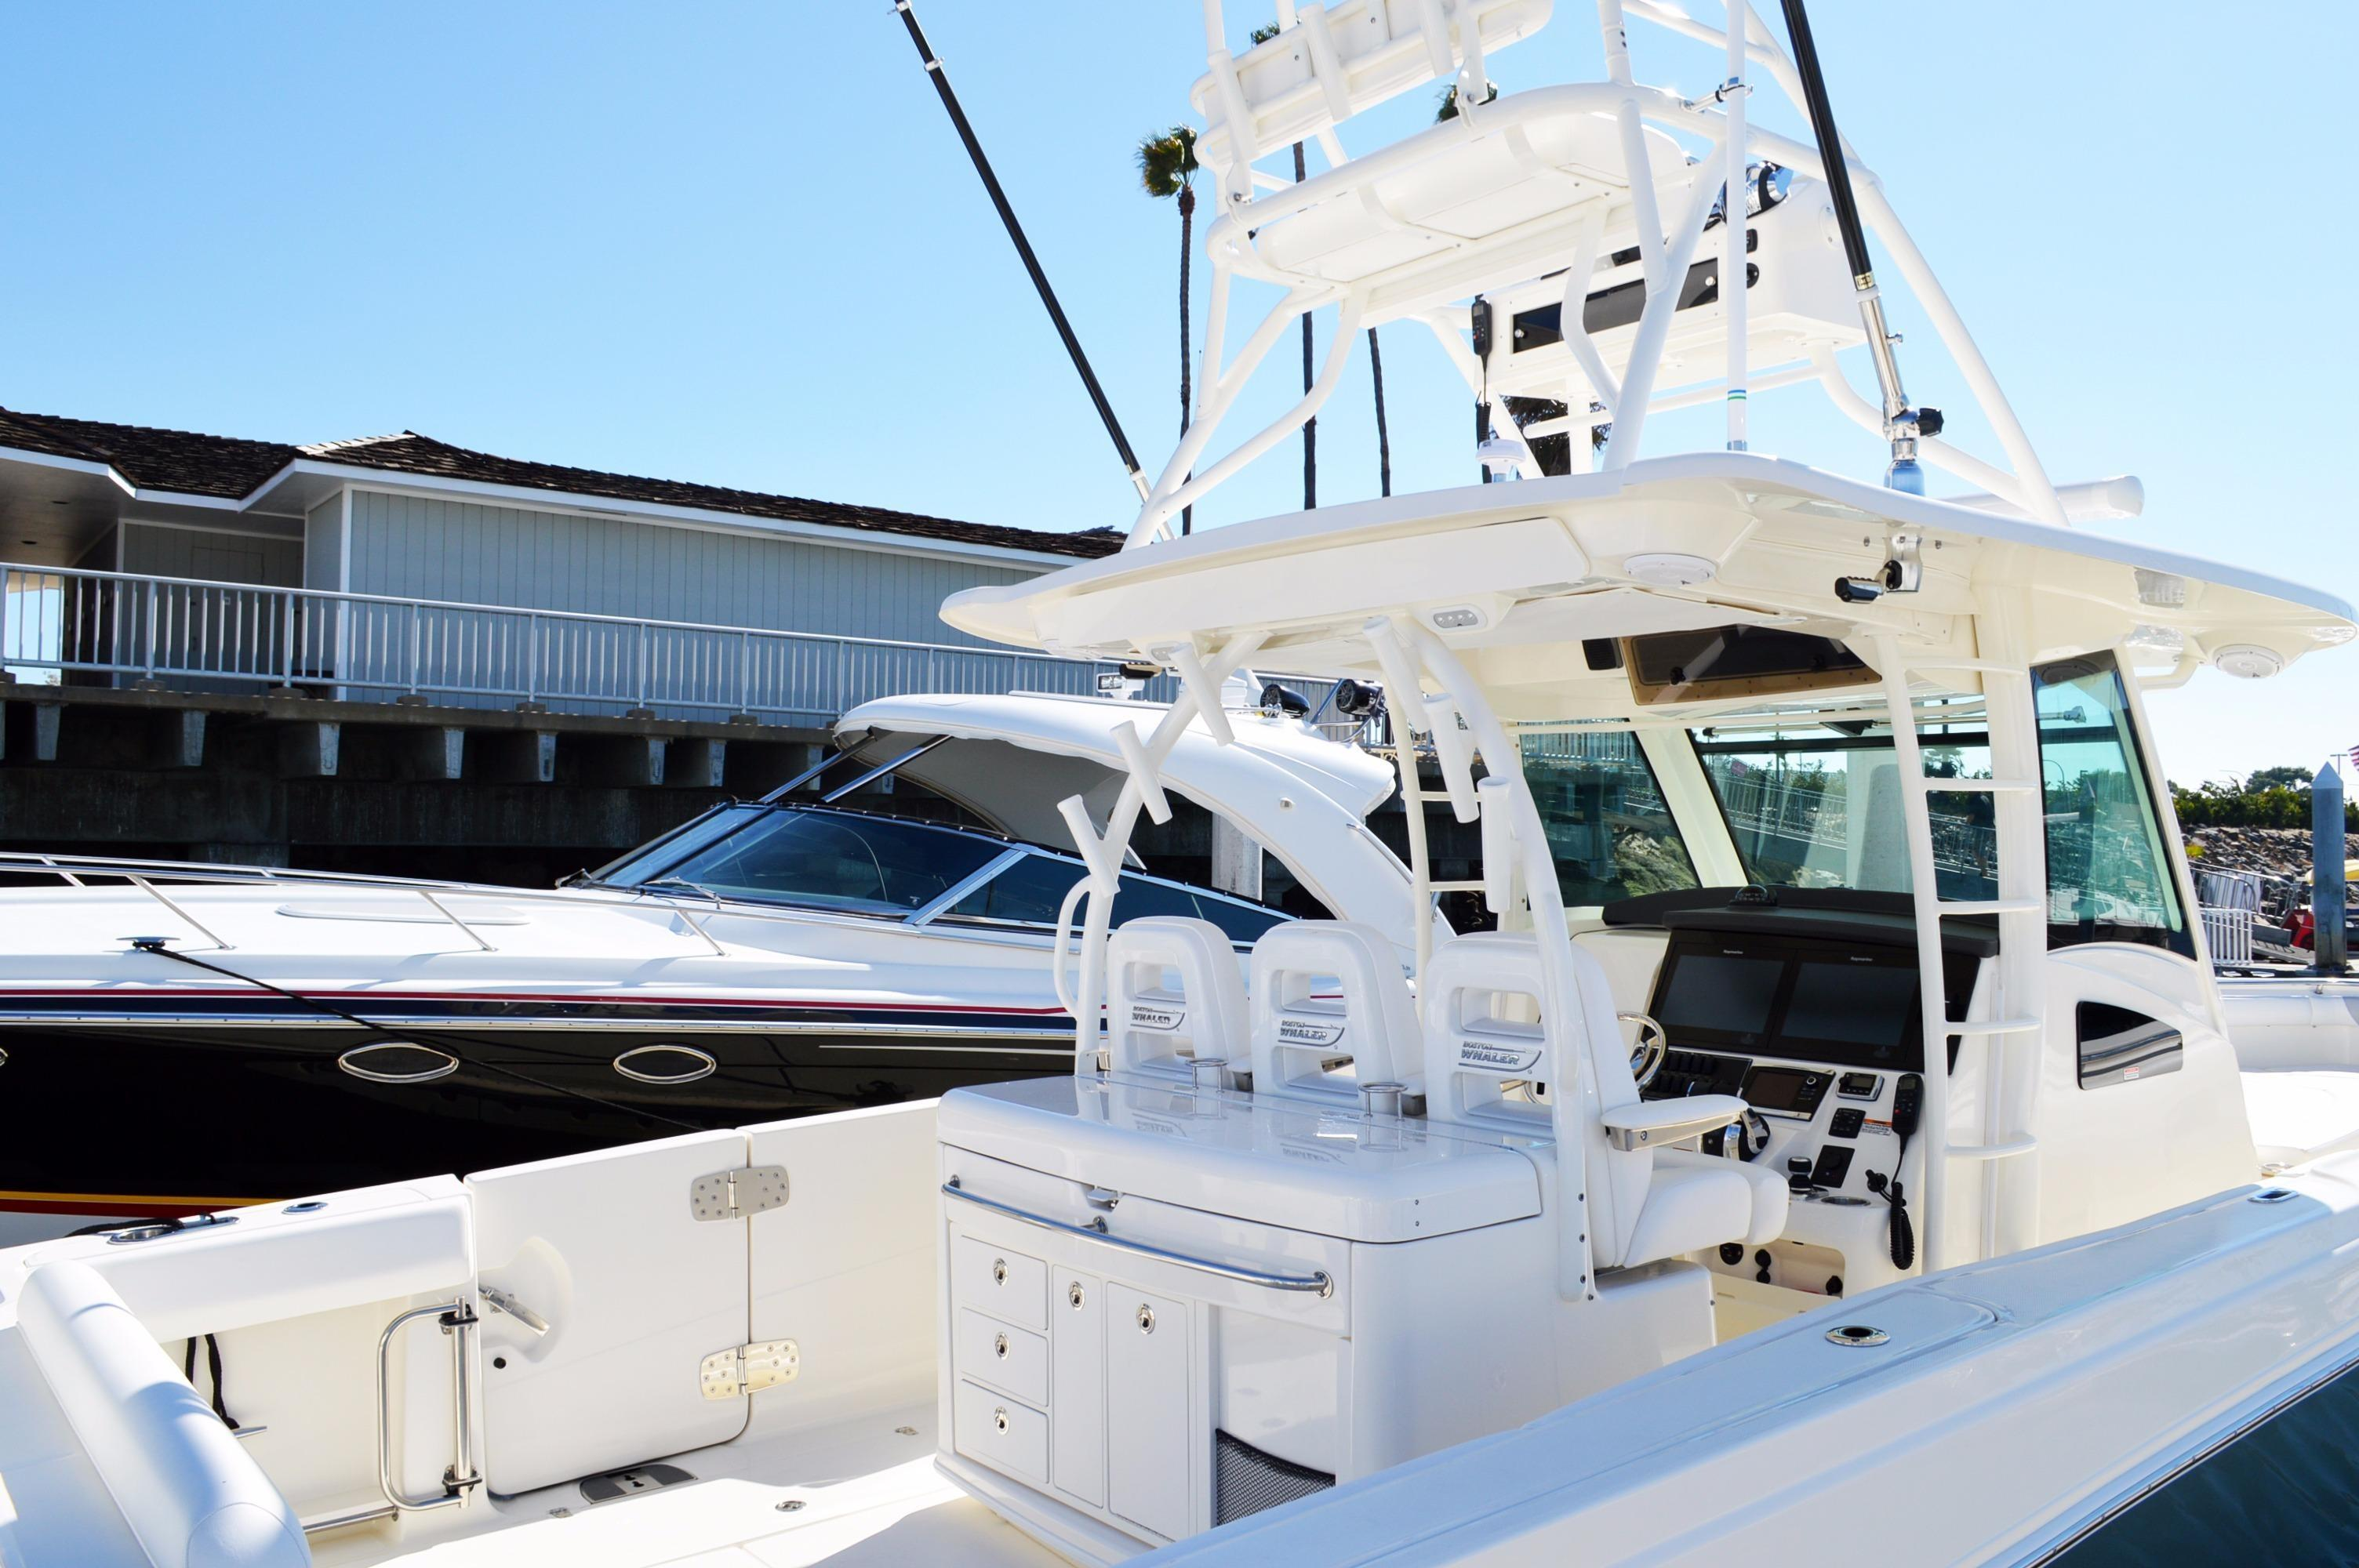 2016 Boston Whaler 370 Outrage #TB2336MB3 inventory image at Sun Country Coastal in Newport Beach